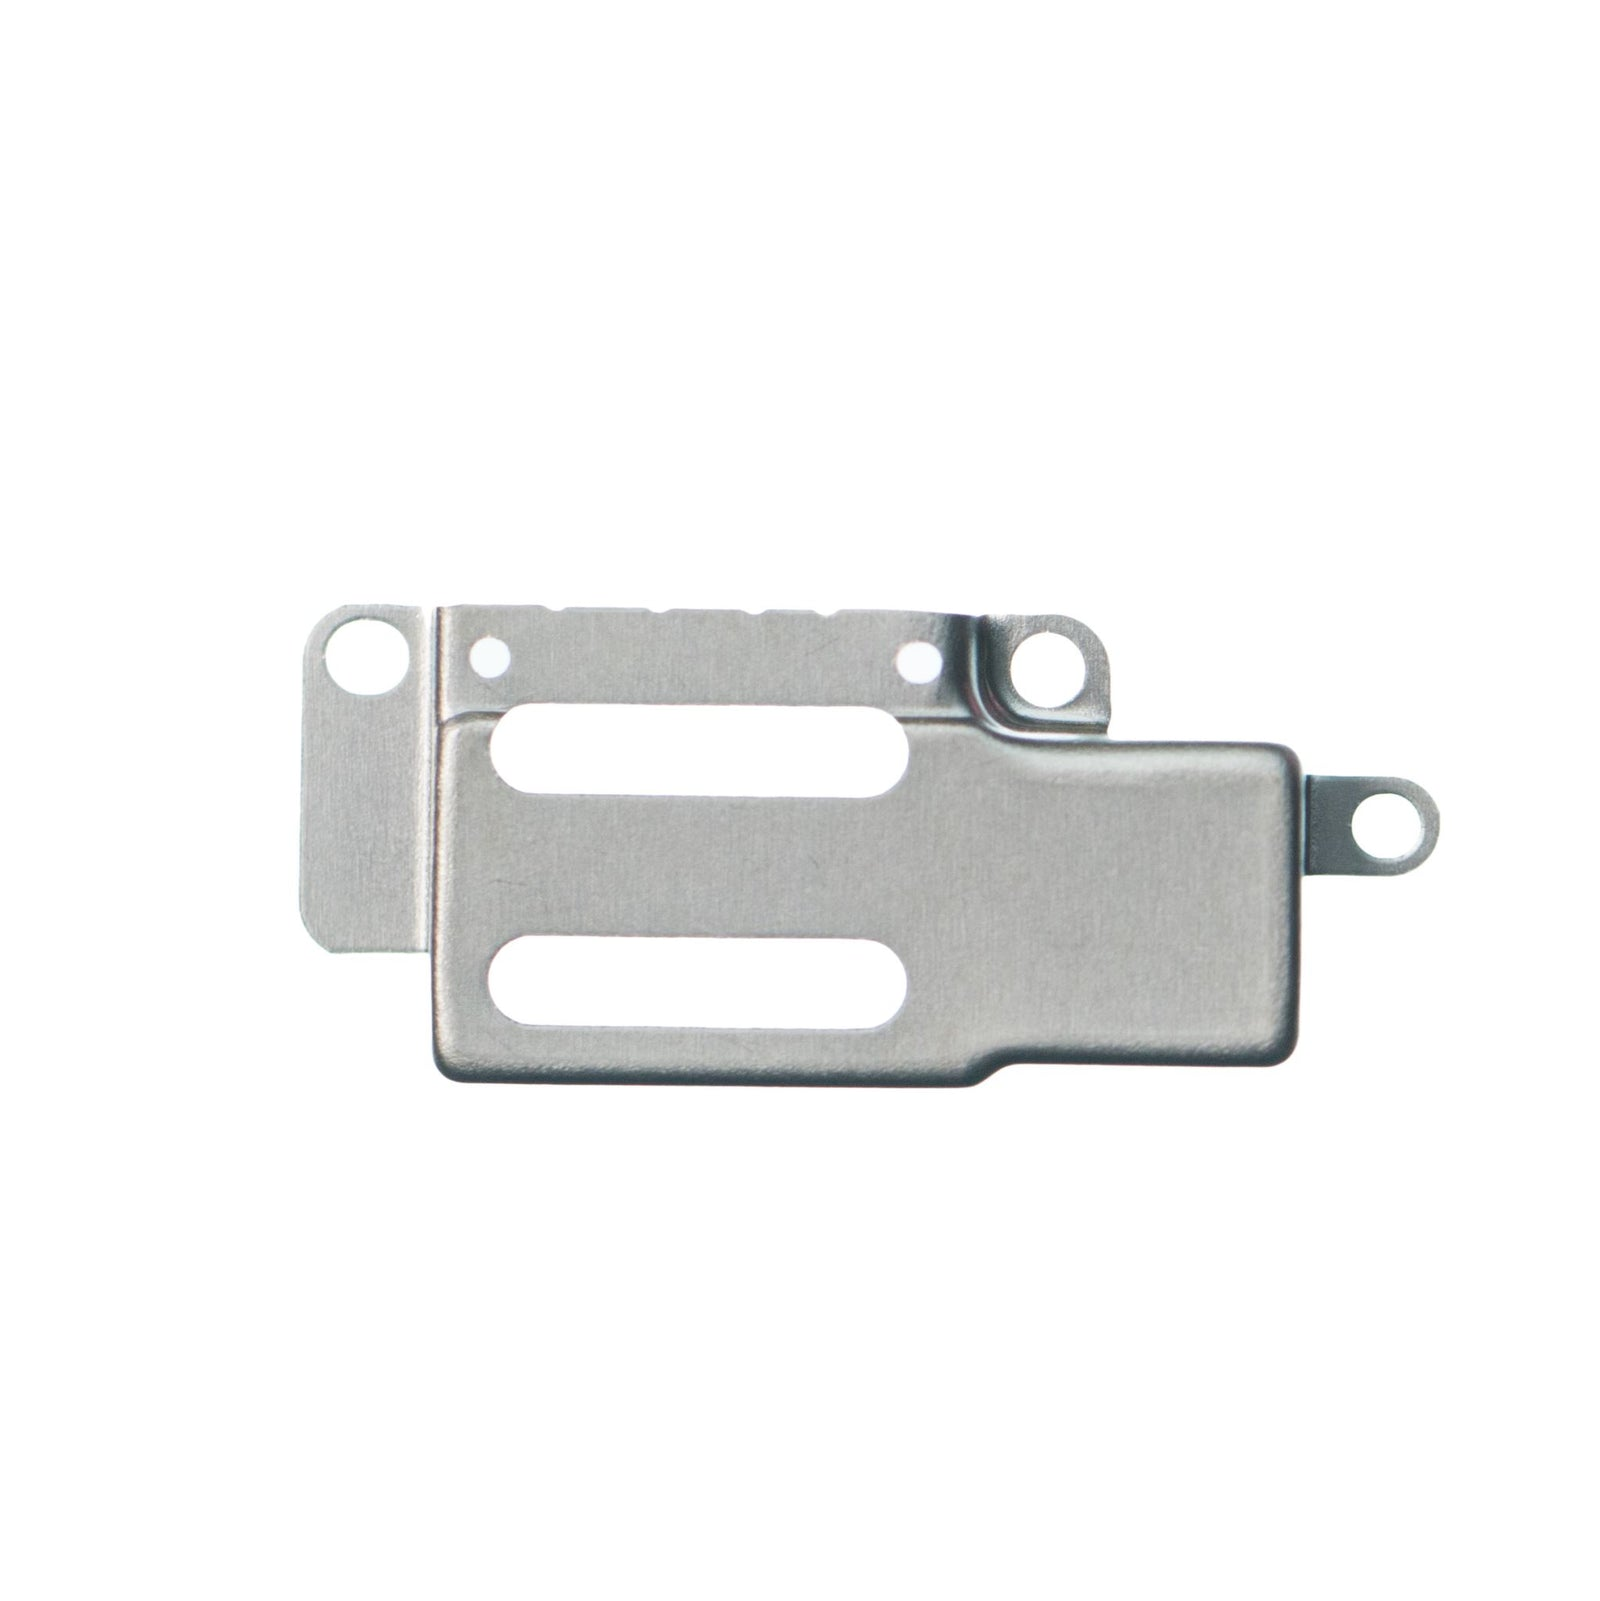 822-10098_etech_parts_wholesale_iphone_6s_front_camera_earpiece_retaining_bracket_6750-edit_RVHE4FSWRDEP.jpg